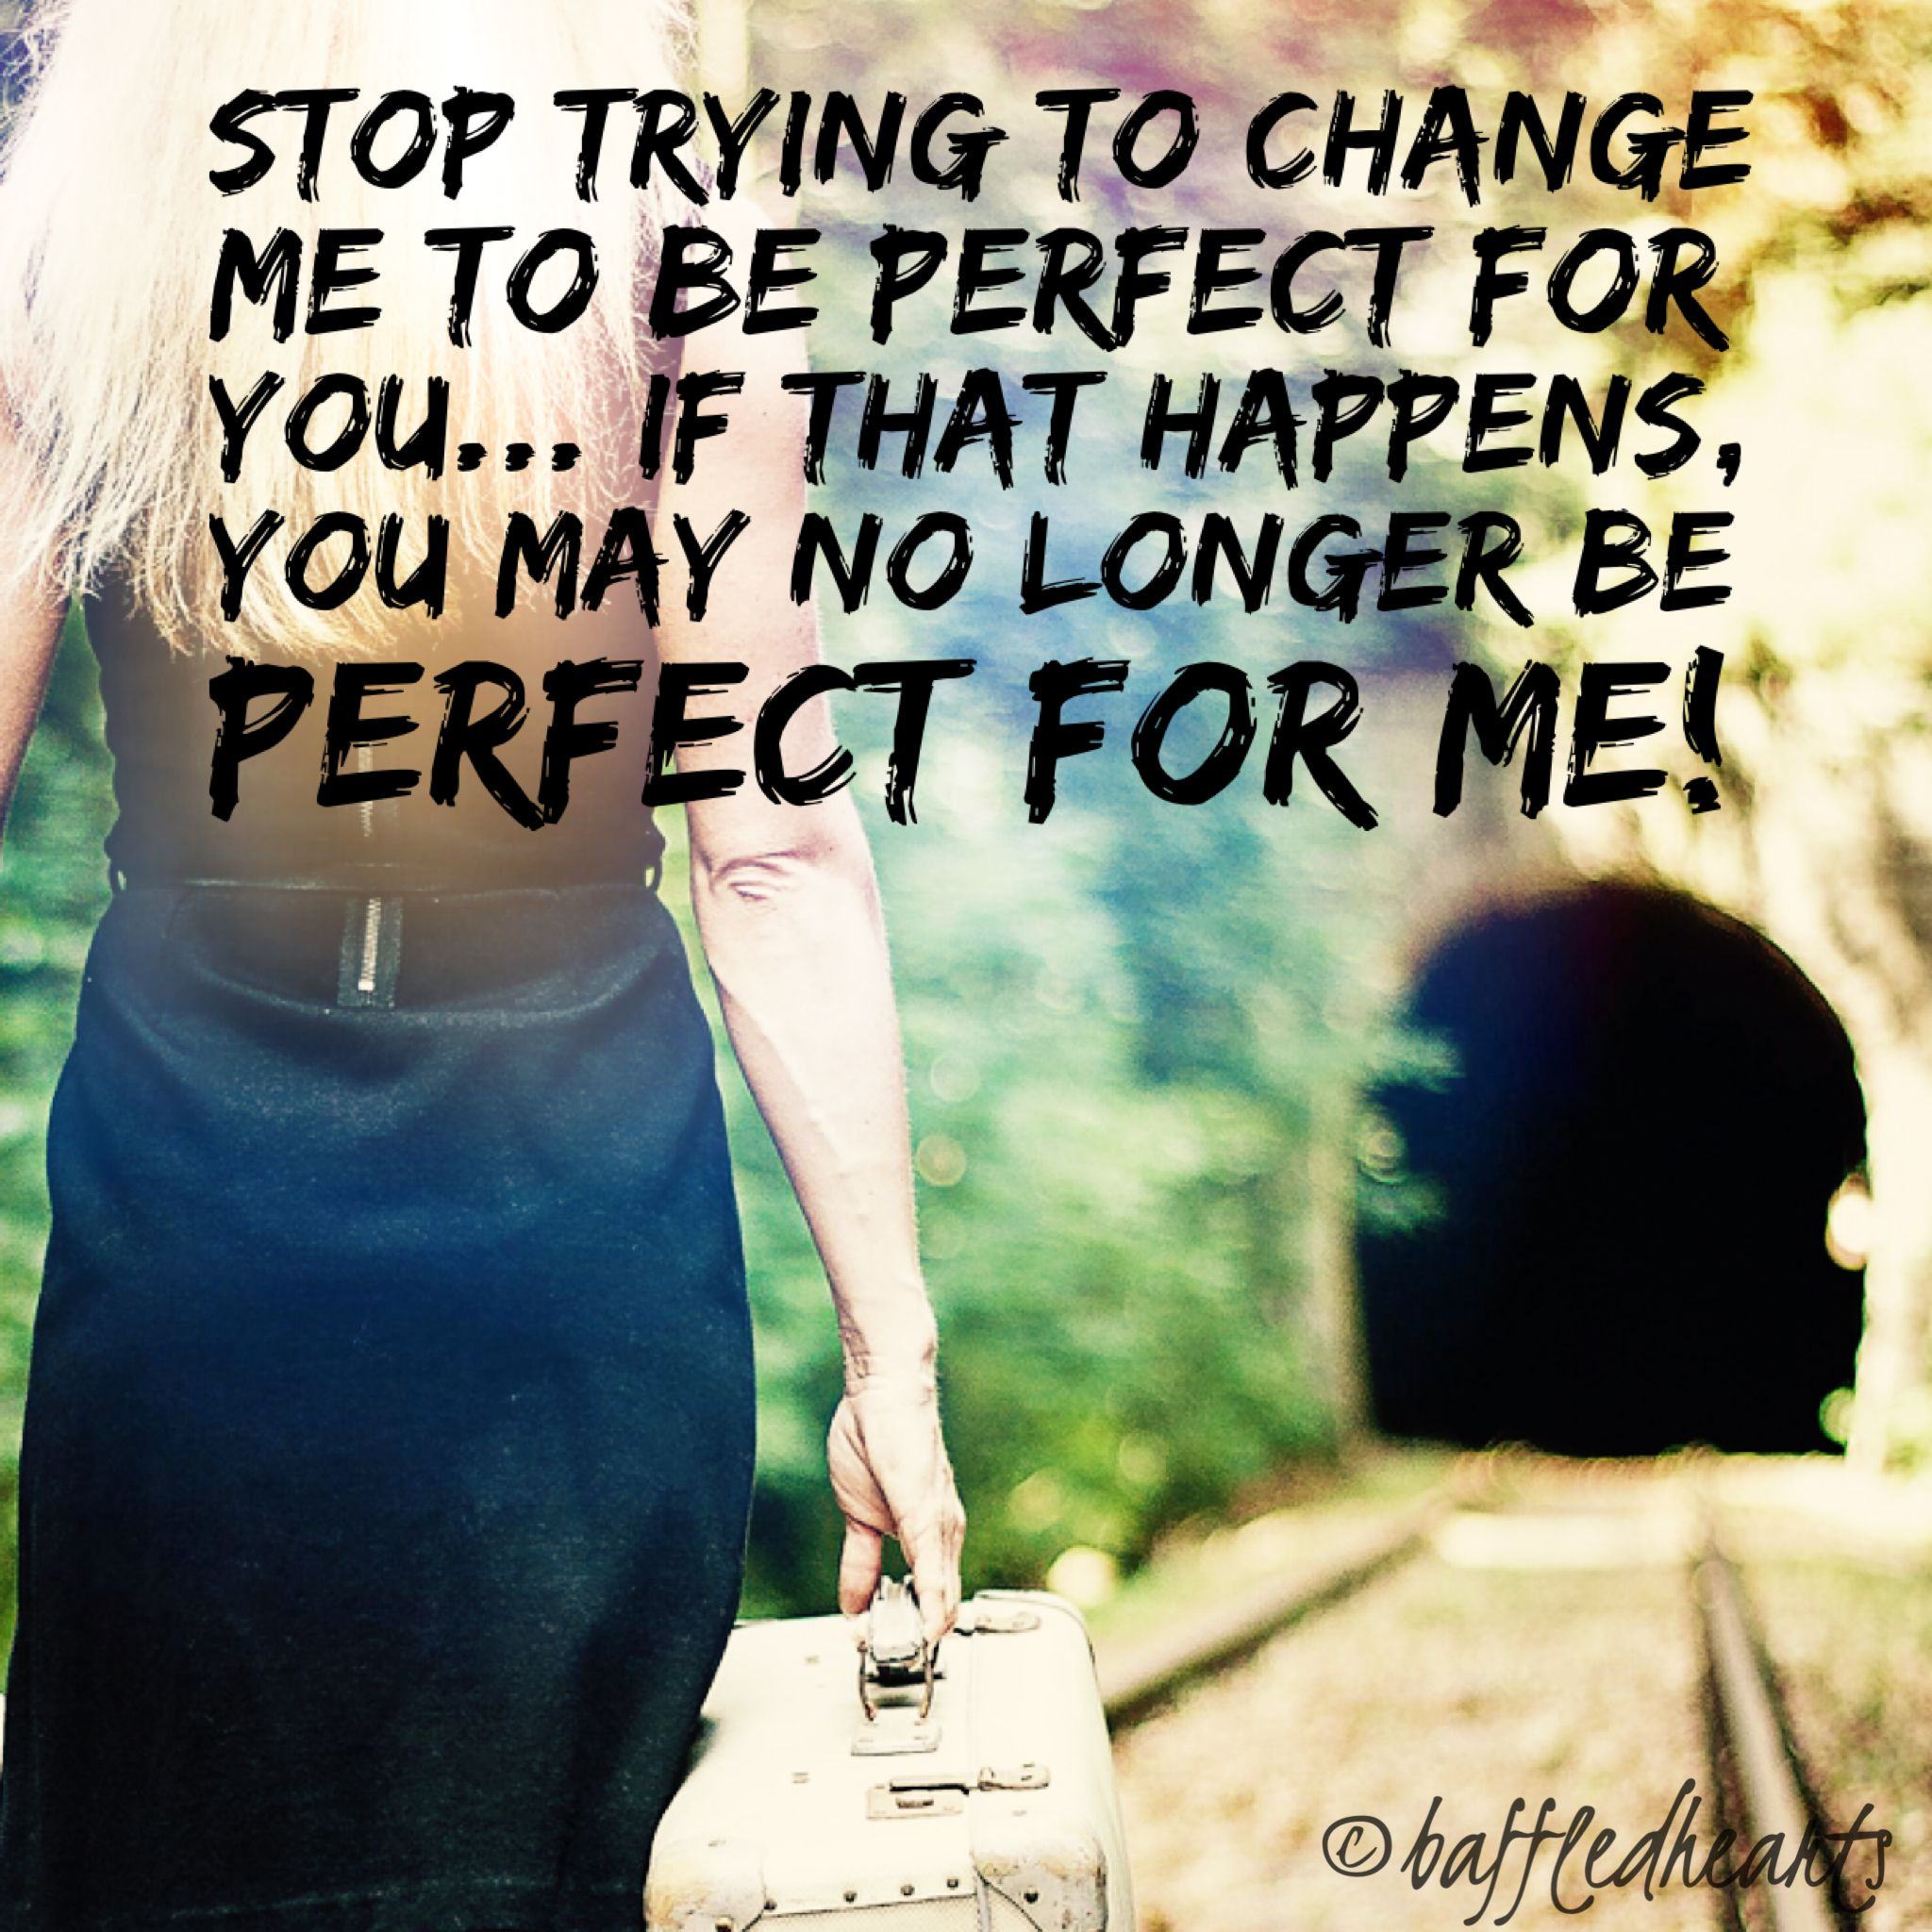 Don't try to change me (With images) | Wise quotes, S ...